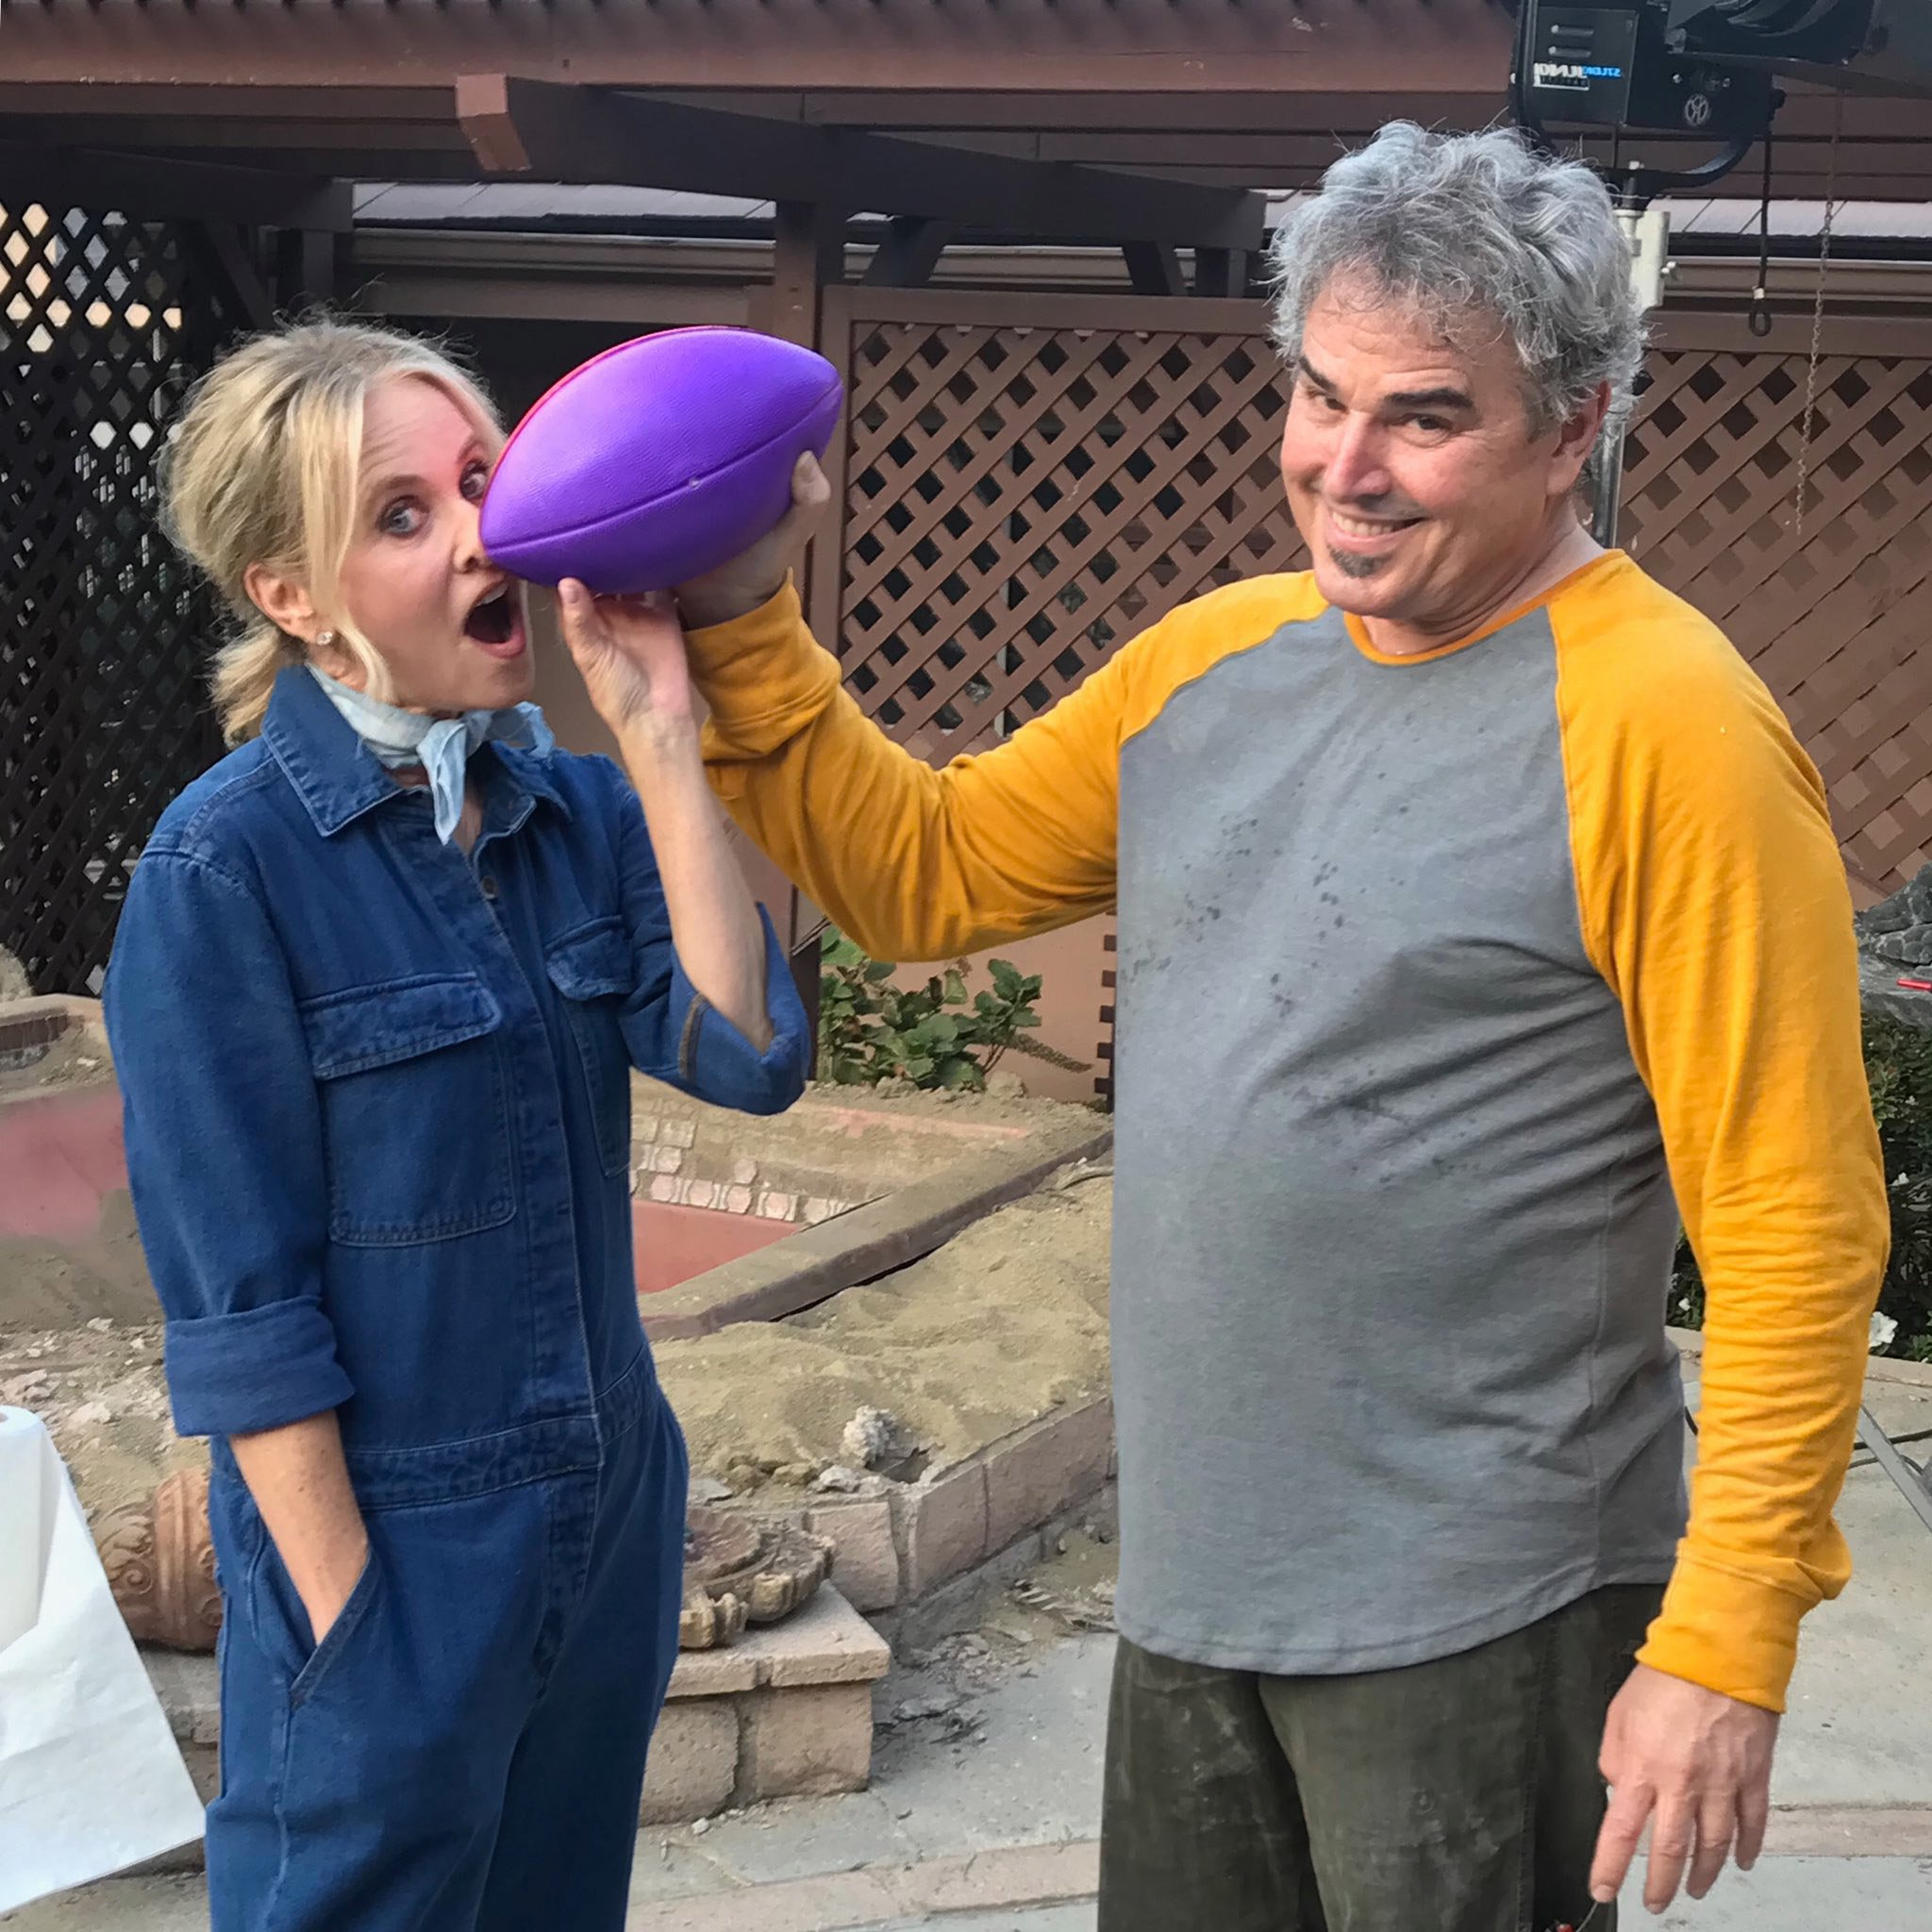 Brady Bunch's Maureen McCormick Takes a Football to the Nose for Christopher Knight's Birthday